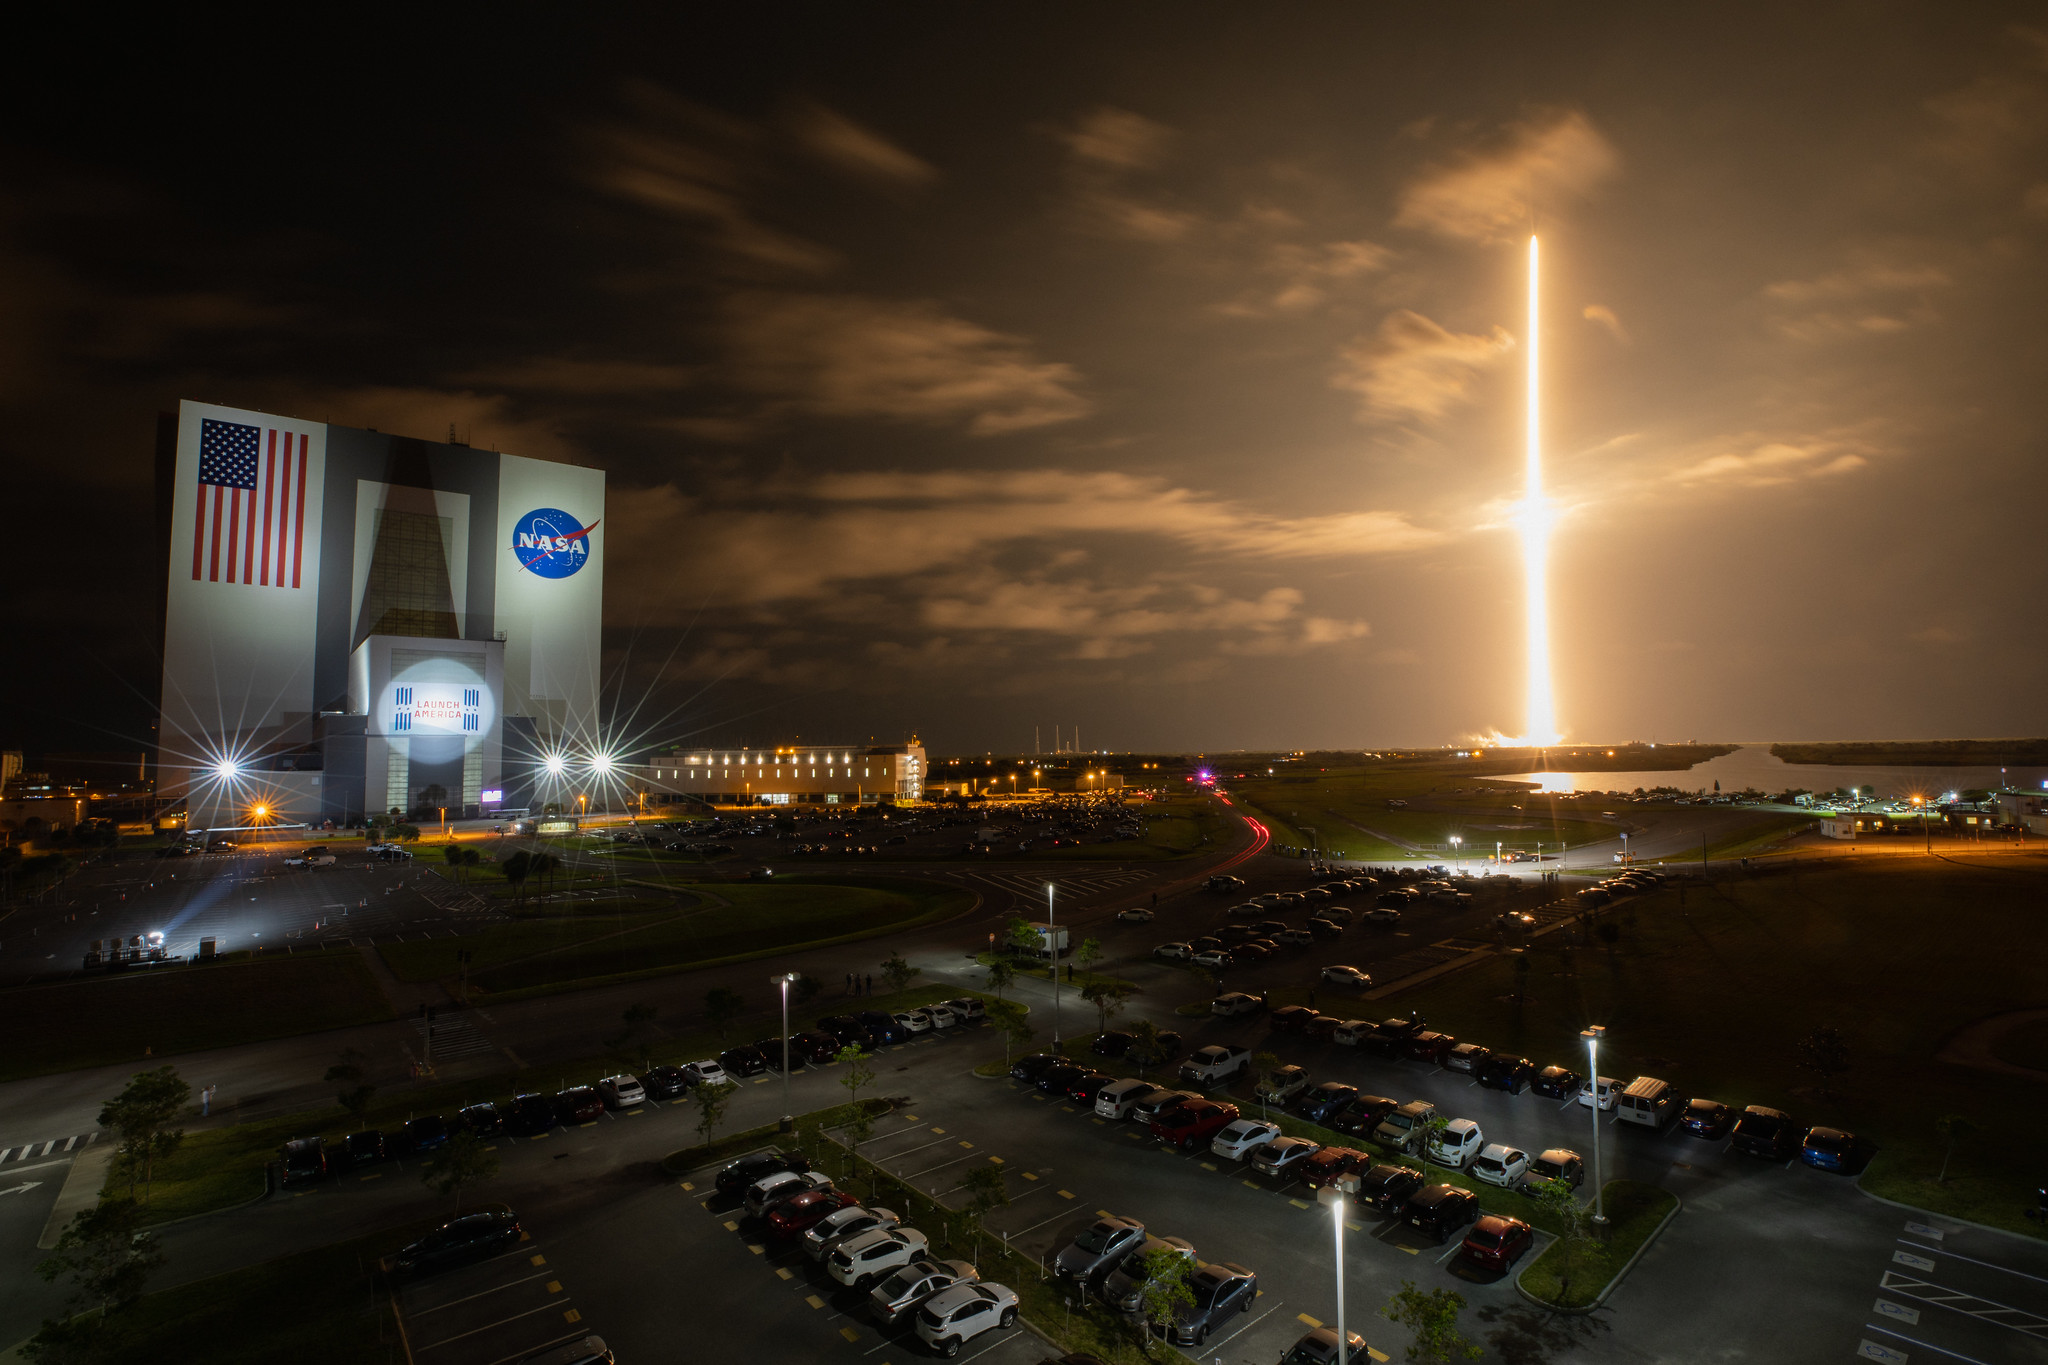 A SpaceX Falcon 9 rocket soars upward from Launch Complex 39A at NASA's Kennedy Space Center in Florida on April 23, 2021.